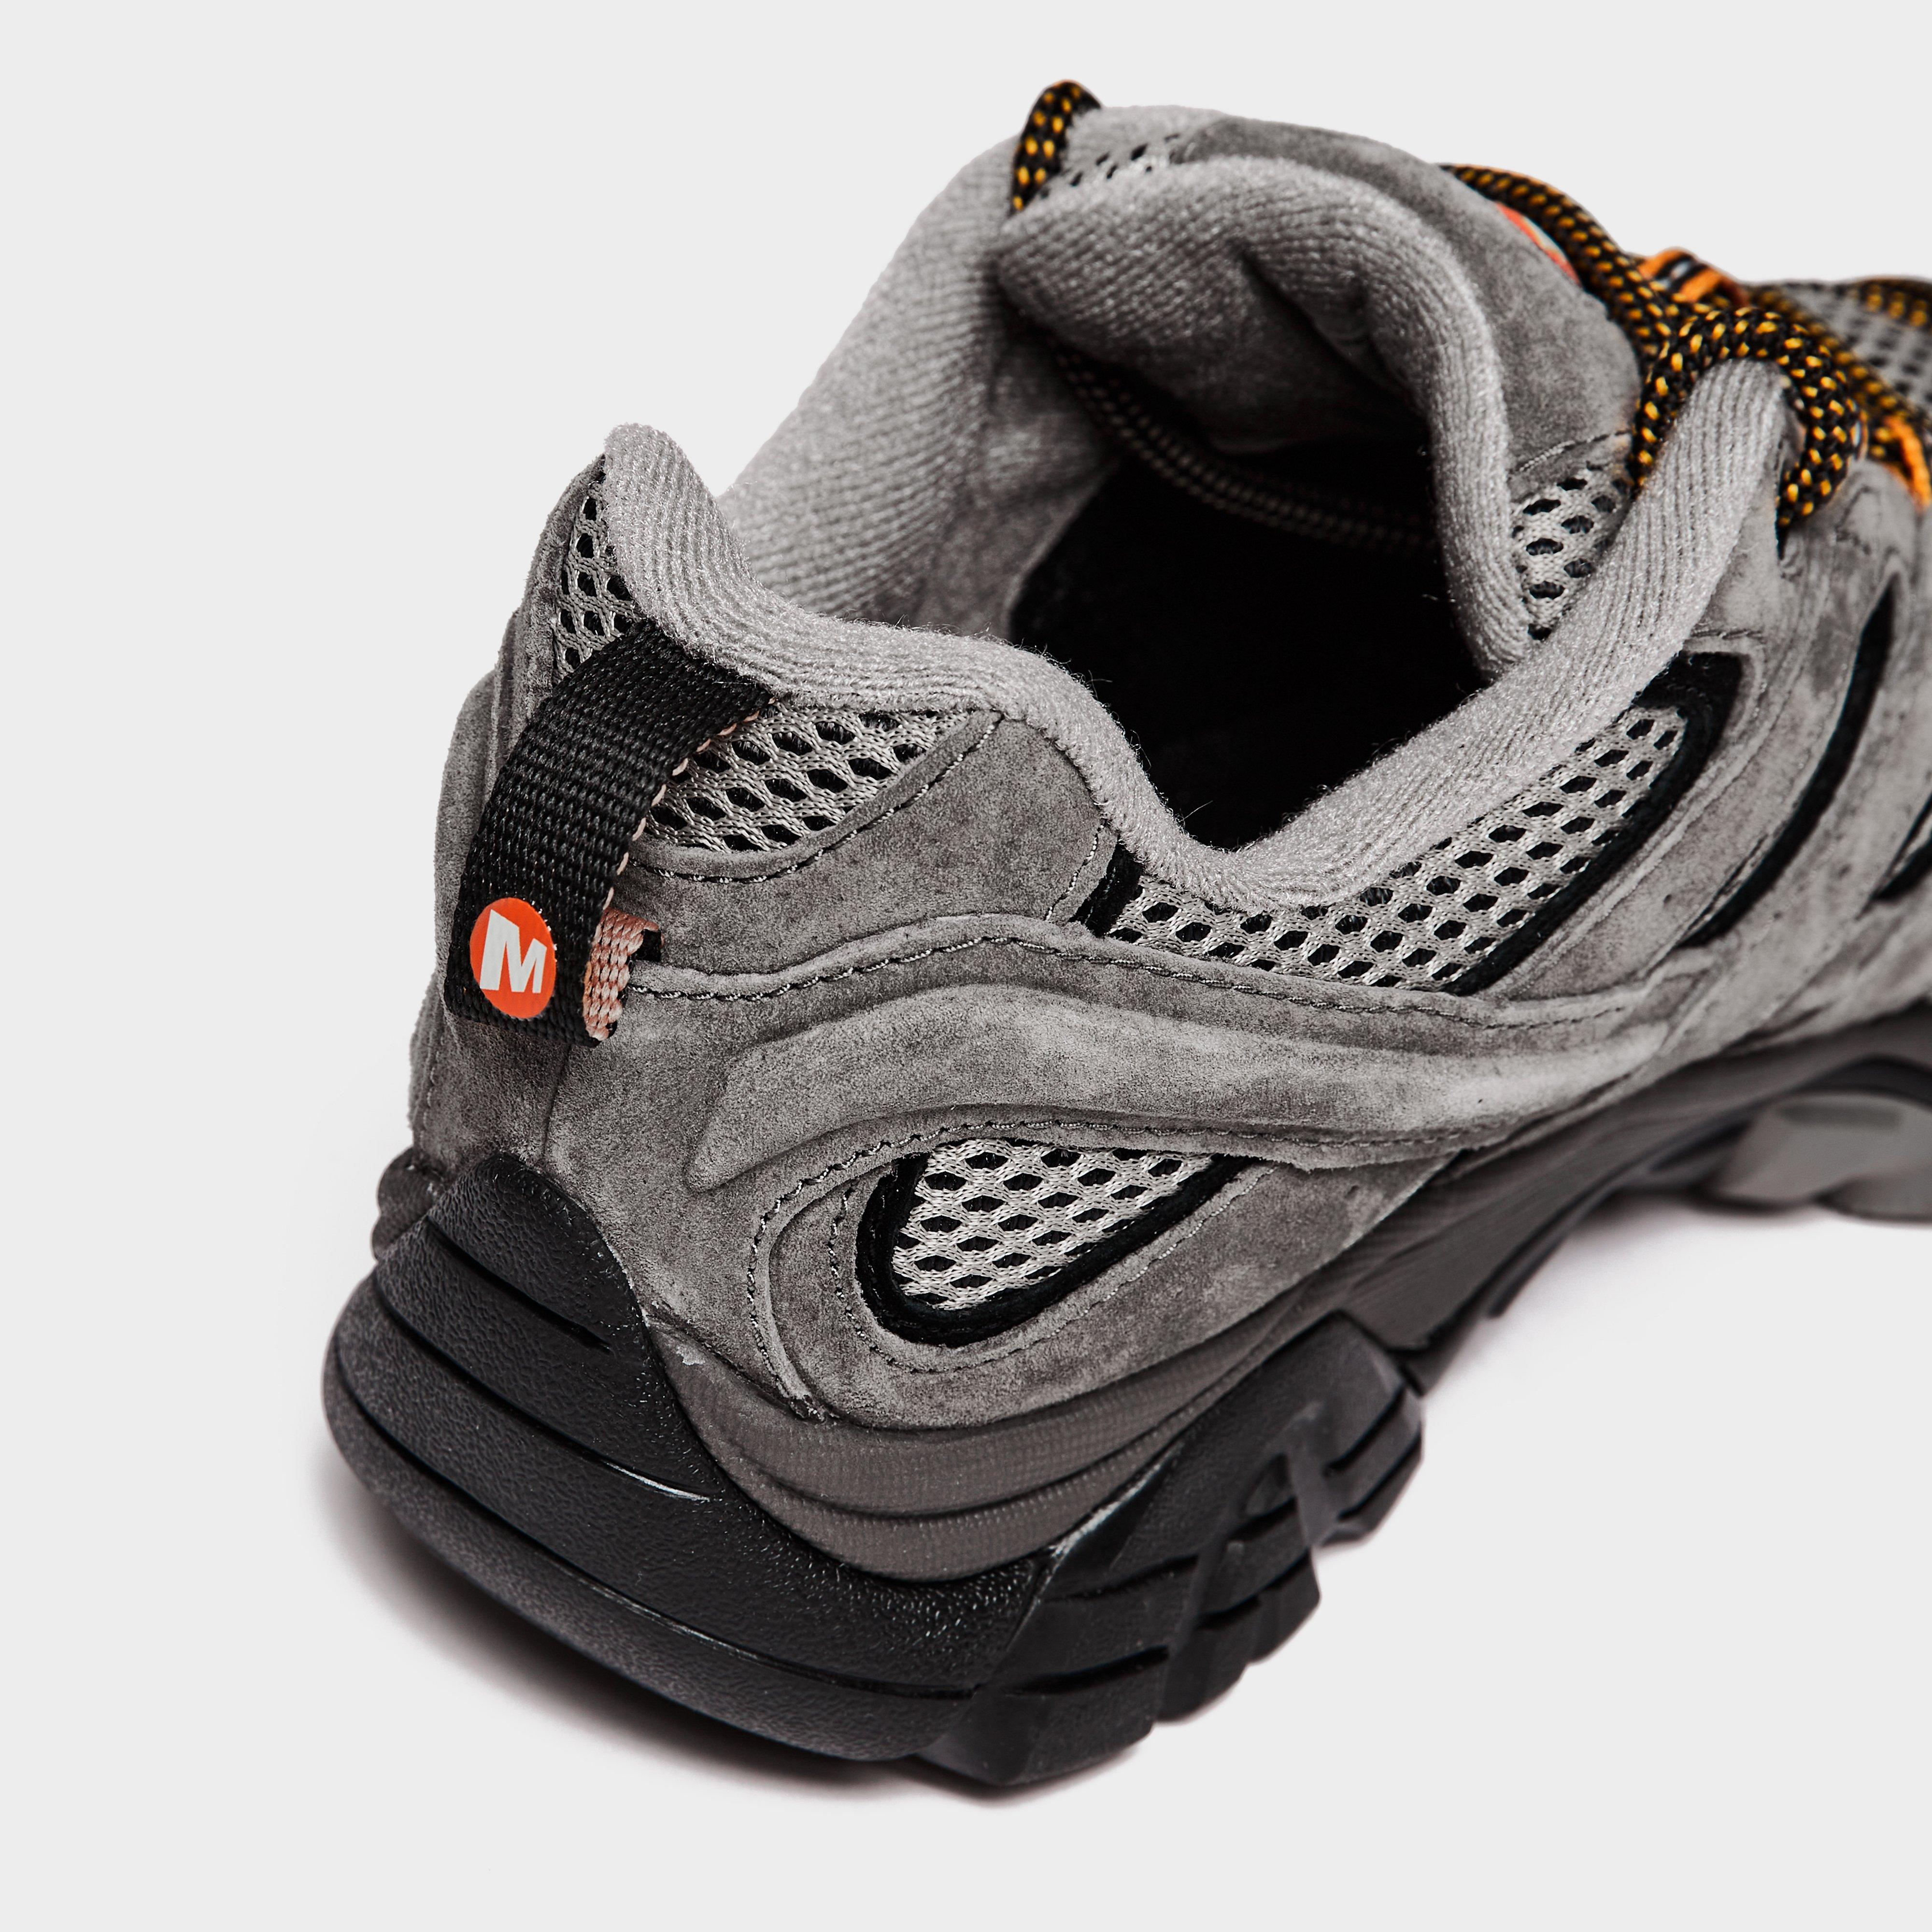 merrell moab 2 ventilator shoes jan